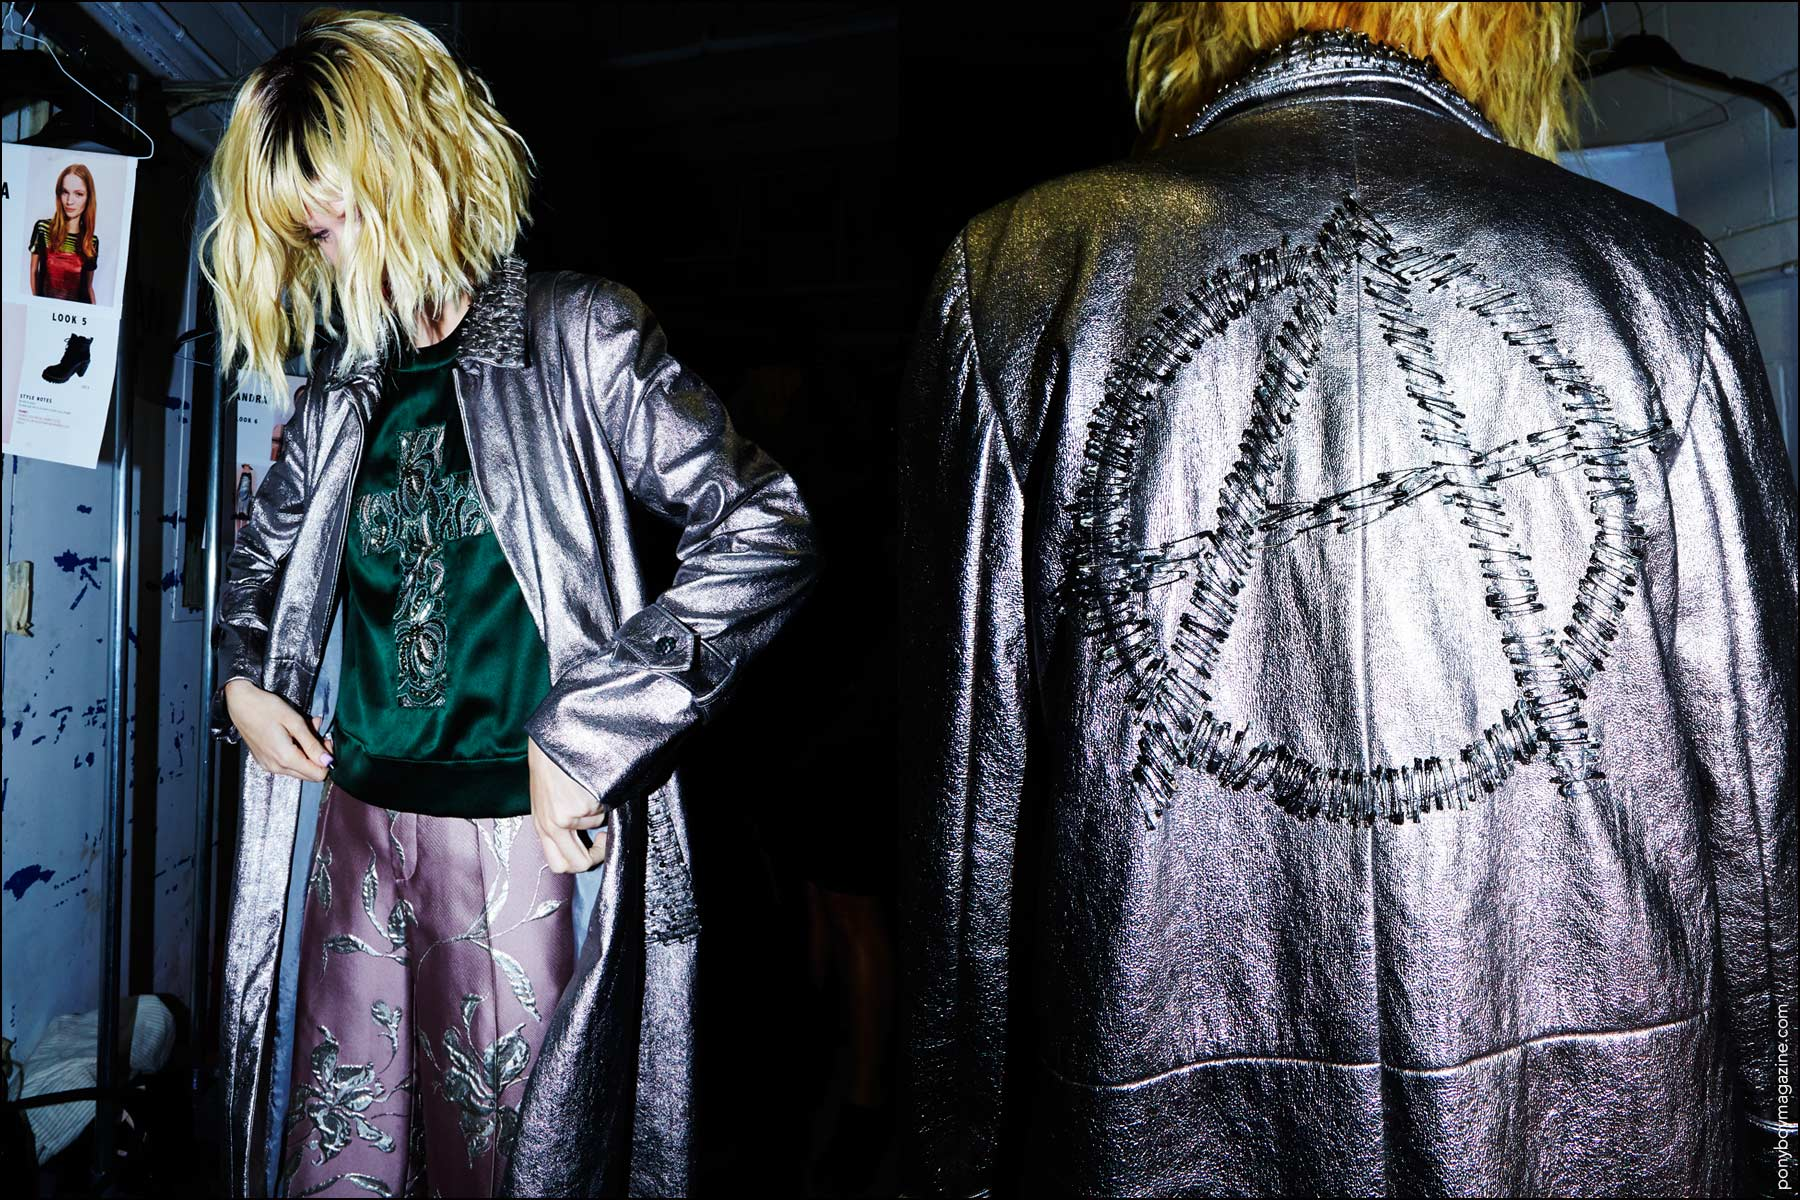 Model Luisa Bianchin photographed in a silver metallic anarchy leather jacket, backstage at the Georgine Spring/Summer 2017 show. Photography by Alexander Thompson for Ponyboy magazine New York.